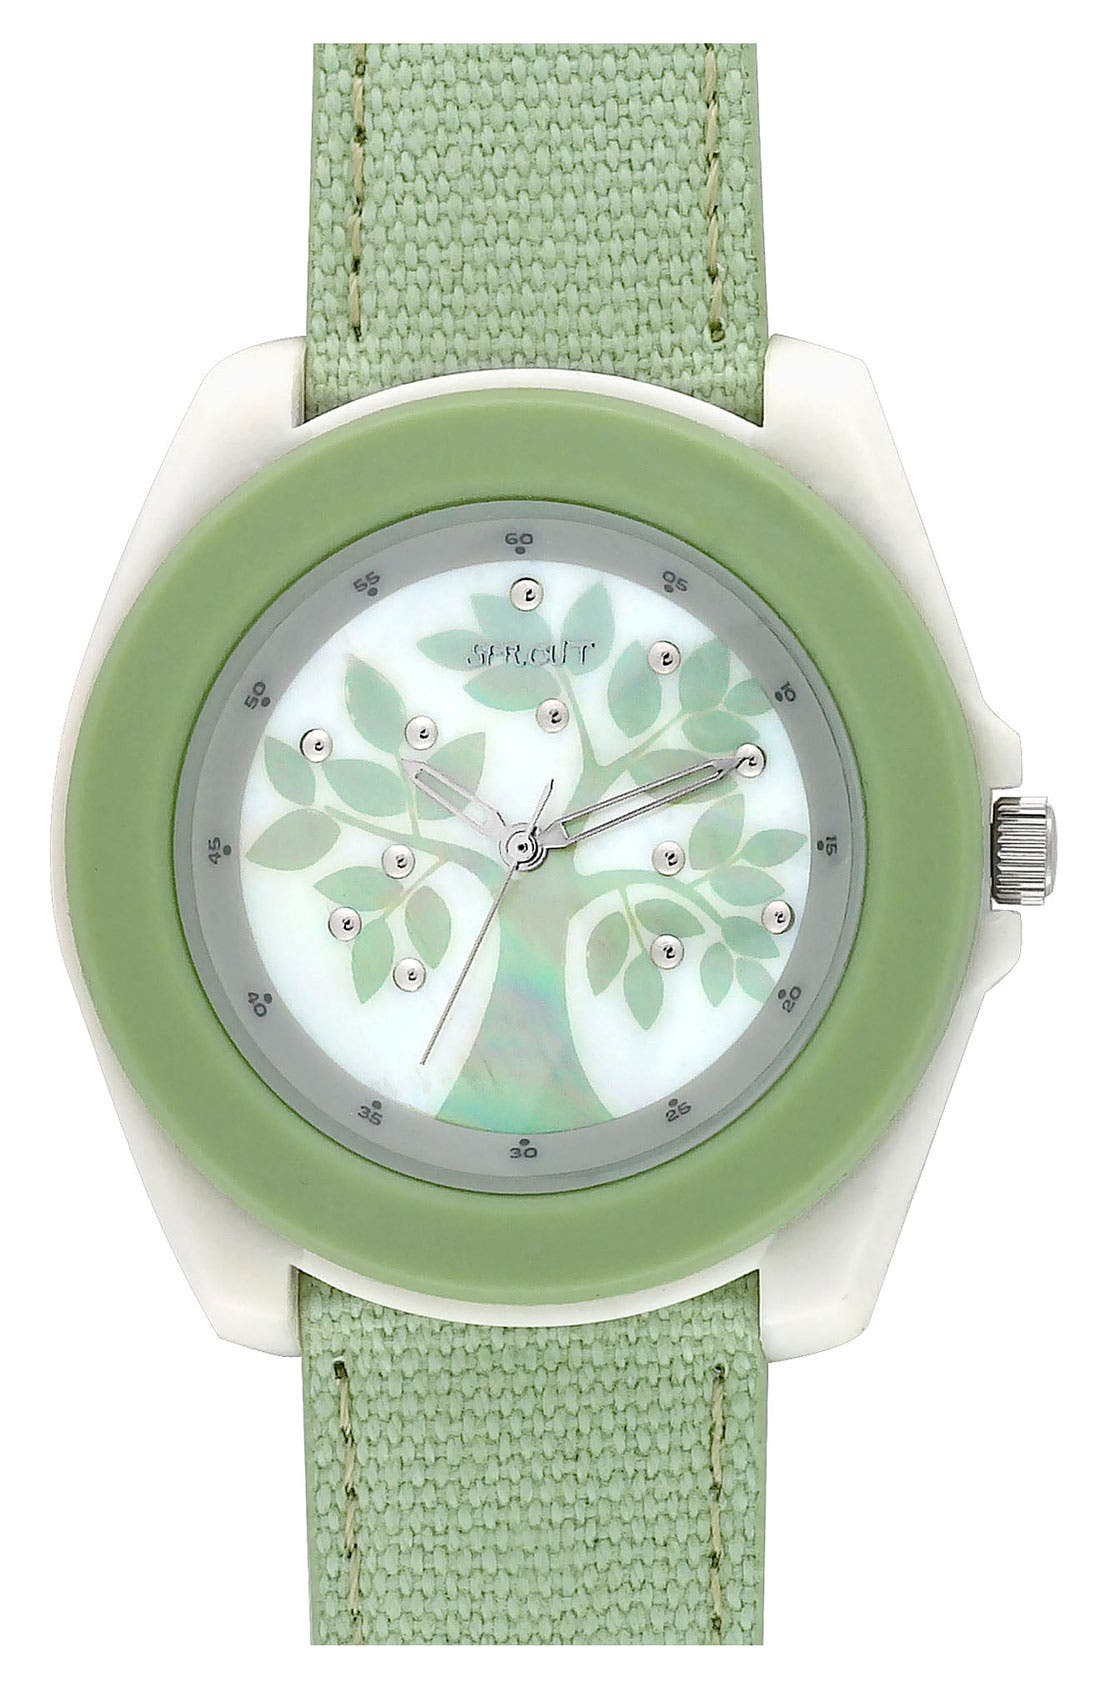 Alternate Image 1 Selected - SPROUT™ Watches Print Dial Cotton Strap Watch, 44mm